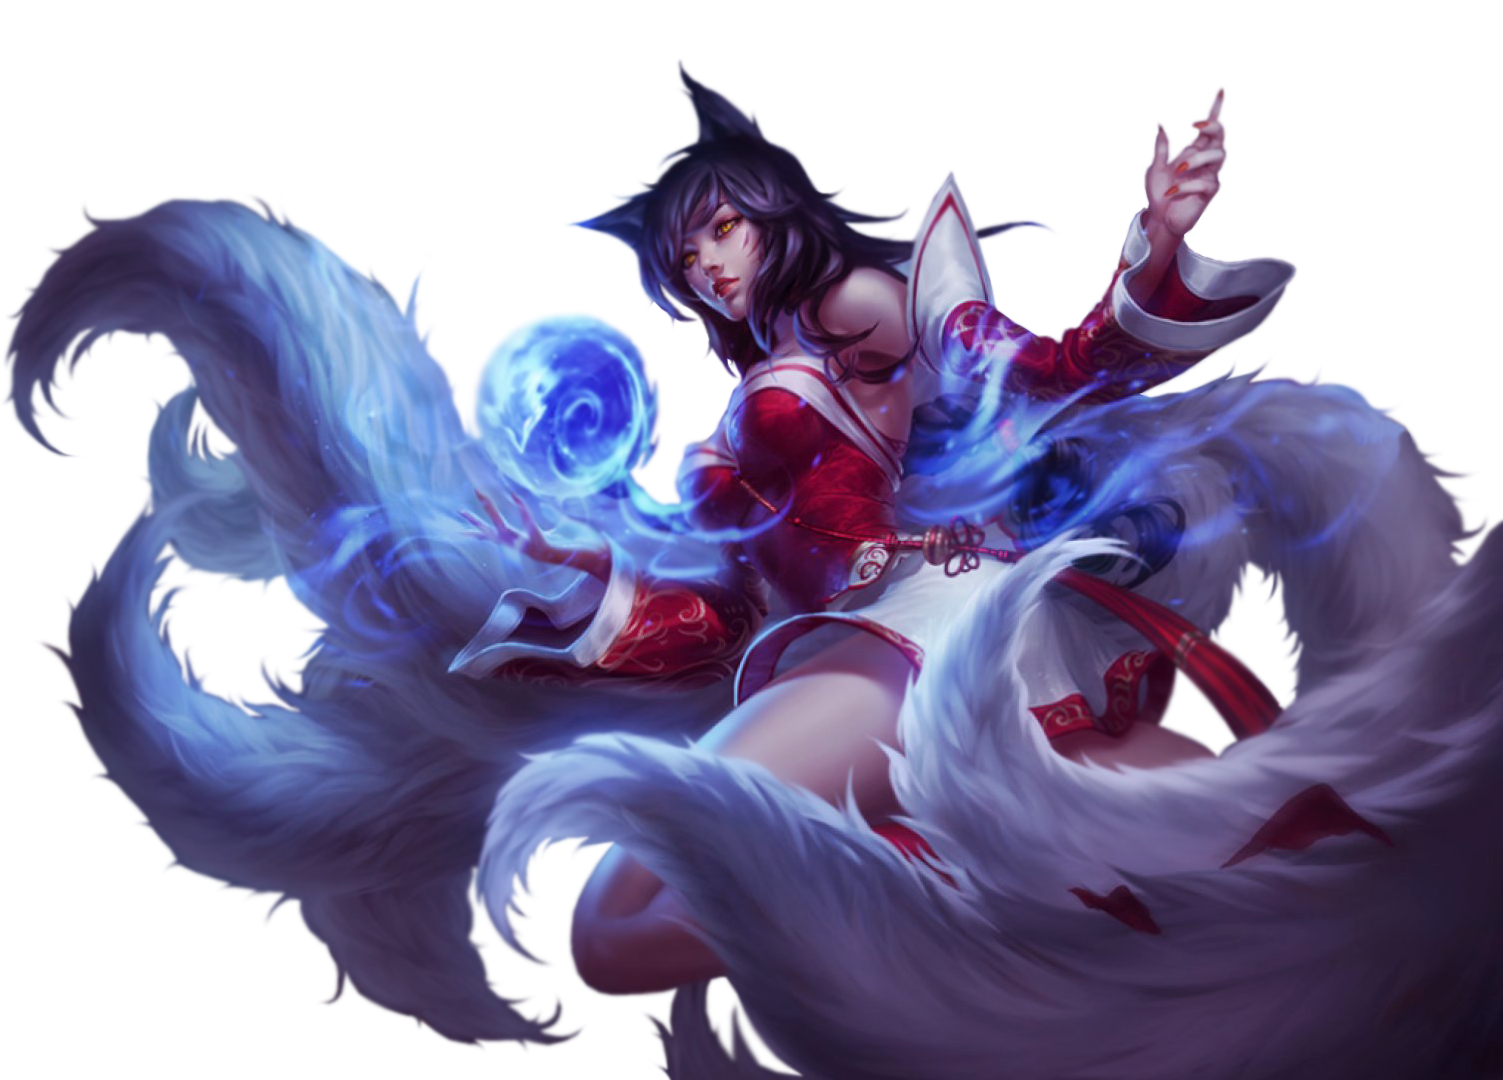 Arcade ahri render league of legends by aliceemad on deviantart league of legends render ahri by singularity01 voltagebd Choice Image